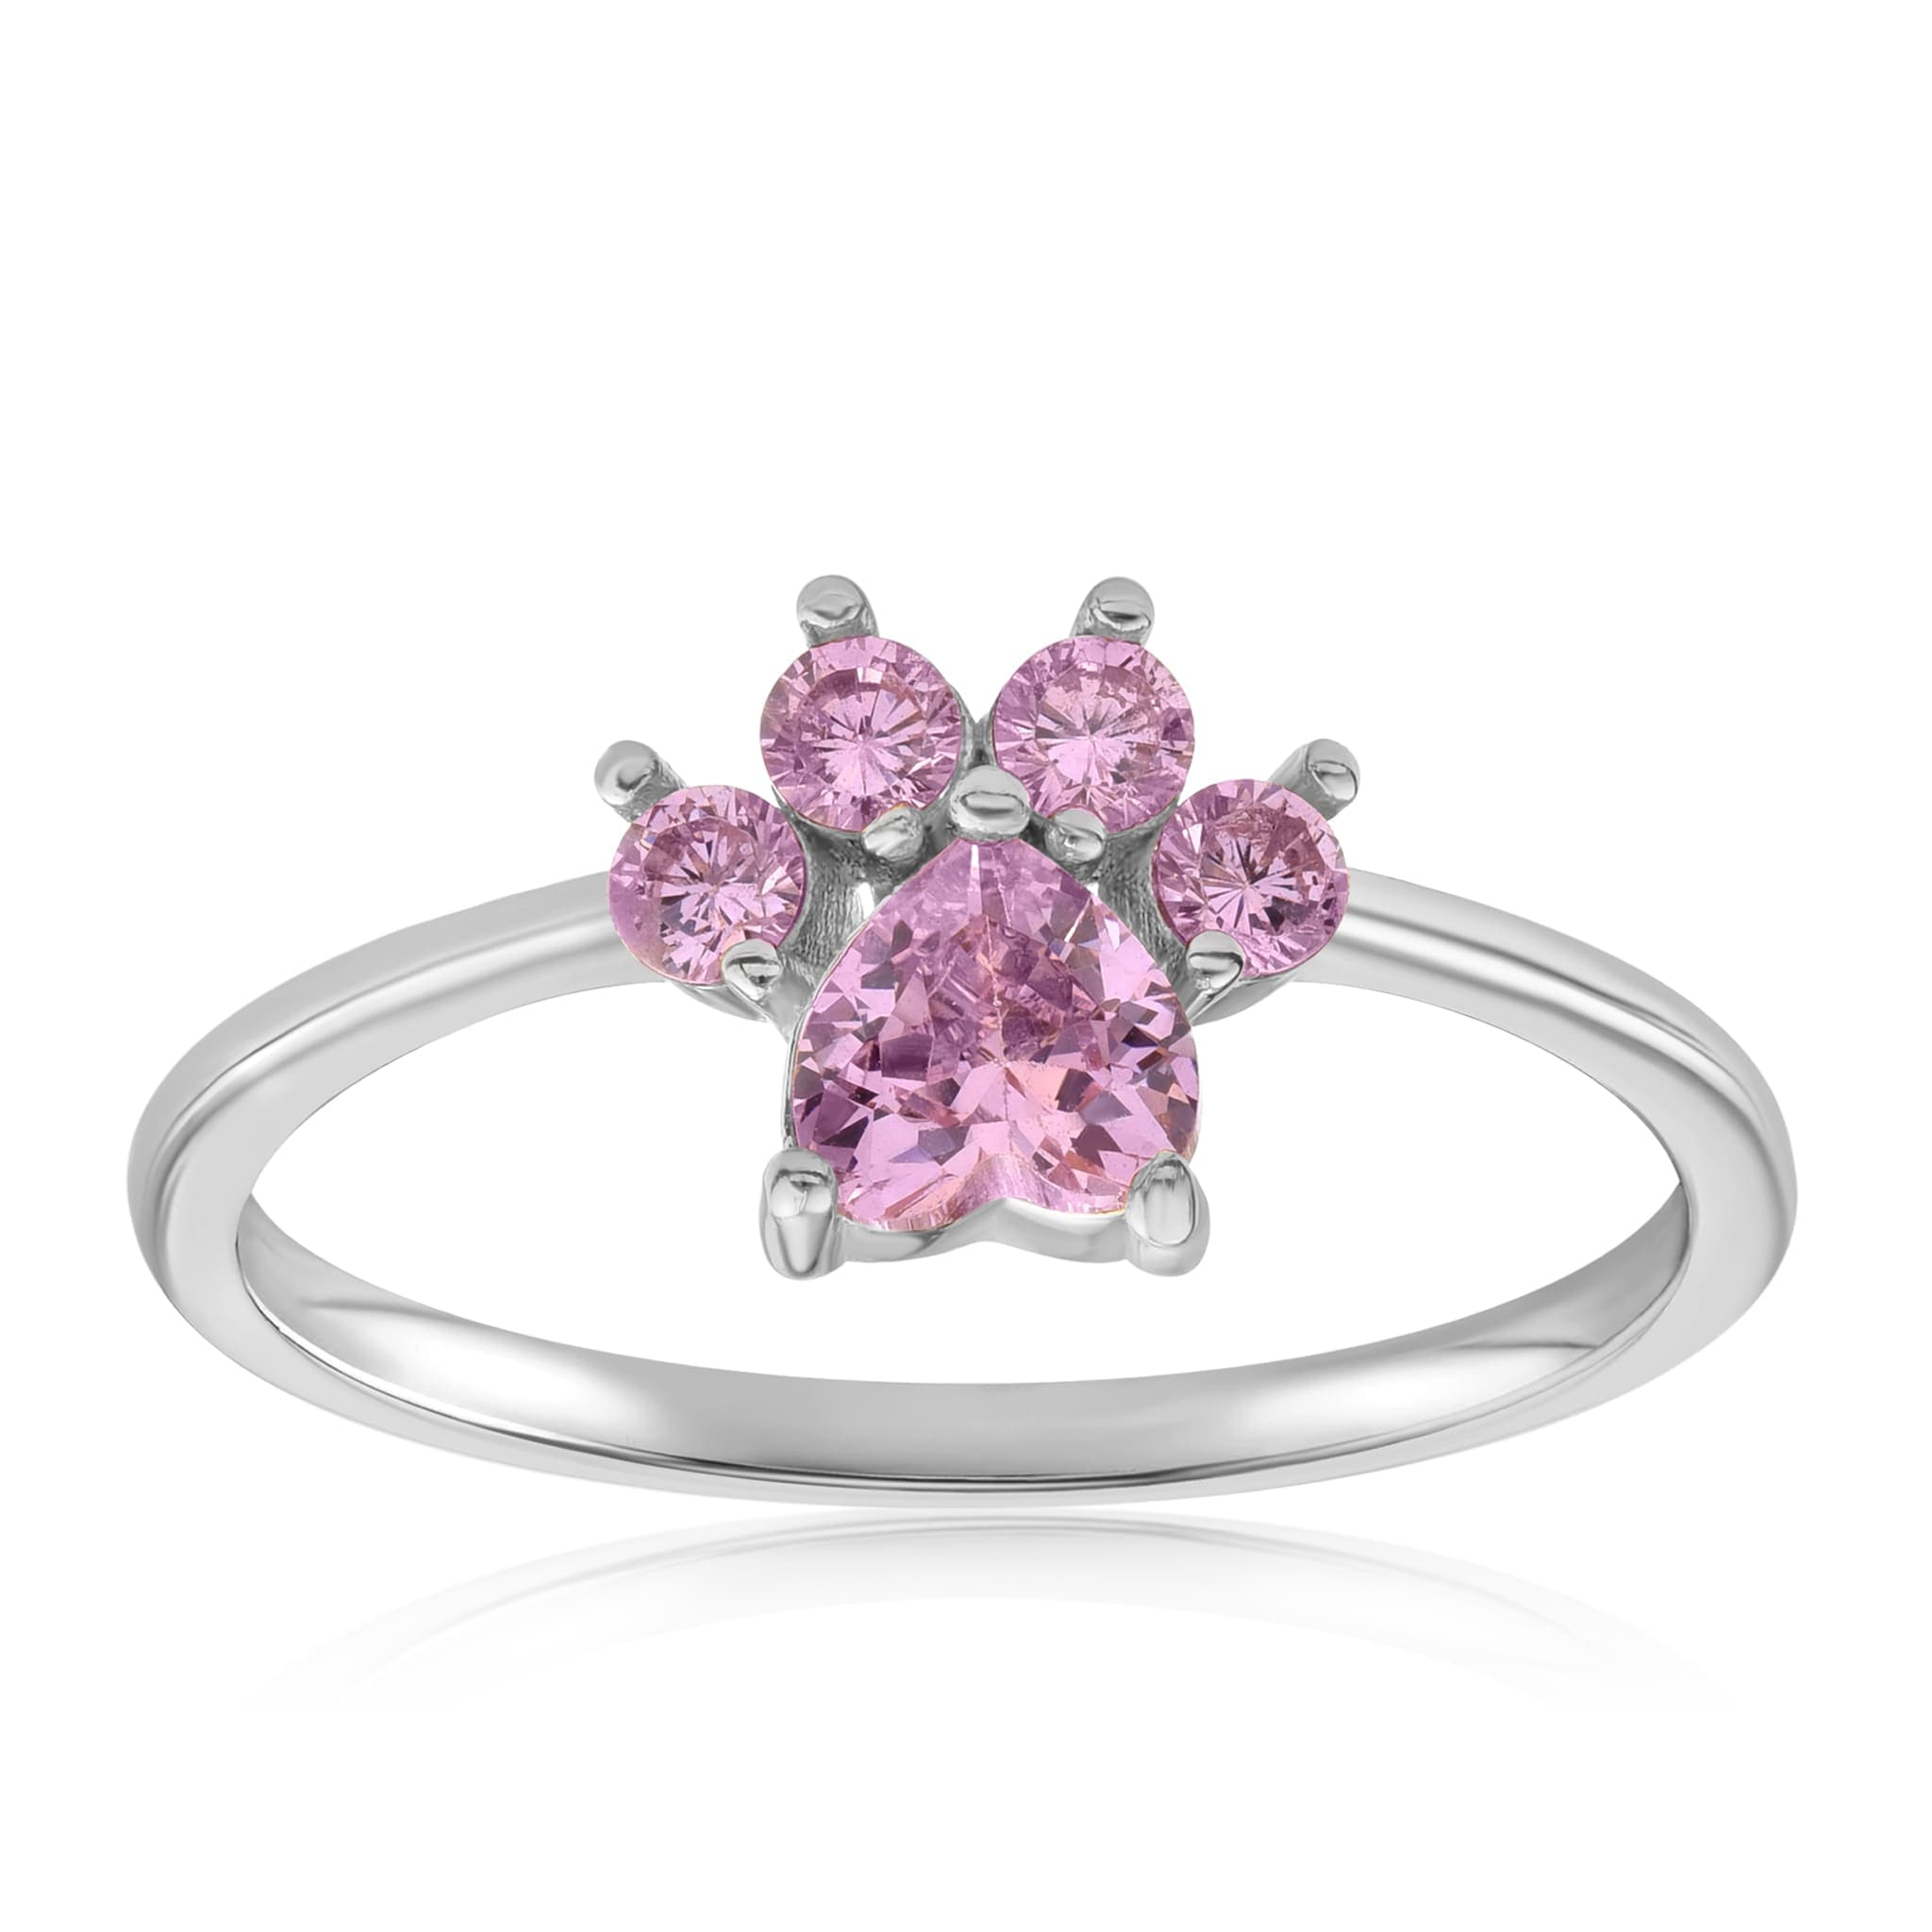 Bella Paw Rose Quartz Ring - Front View Facing Up - 925 Sterling Silver